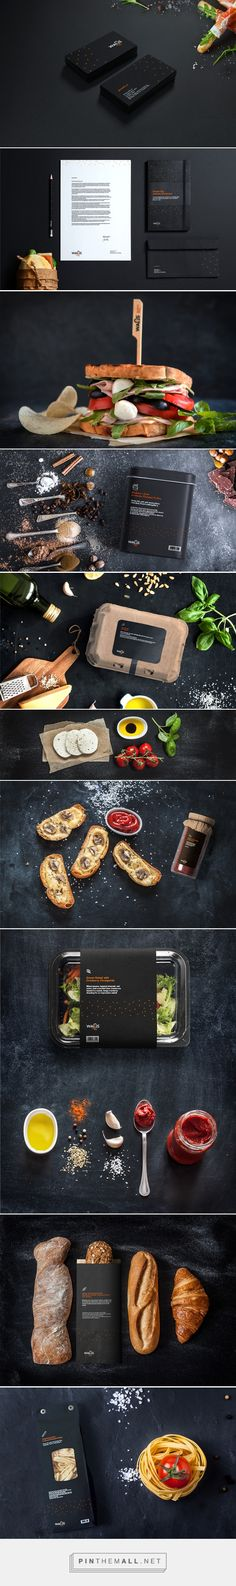 Walls™ sandwich shop on Behance... - a grouped images picture - Pin Them All